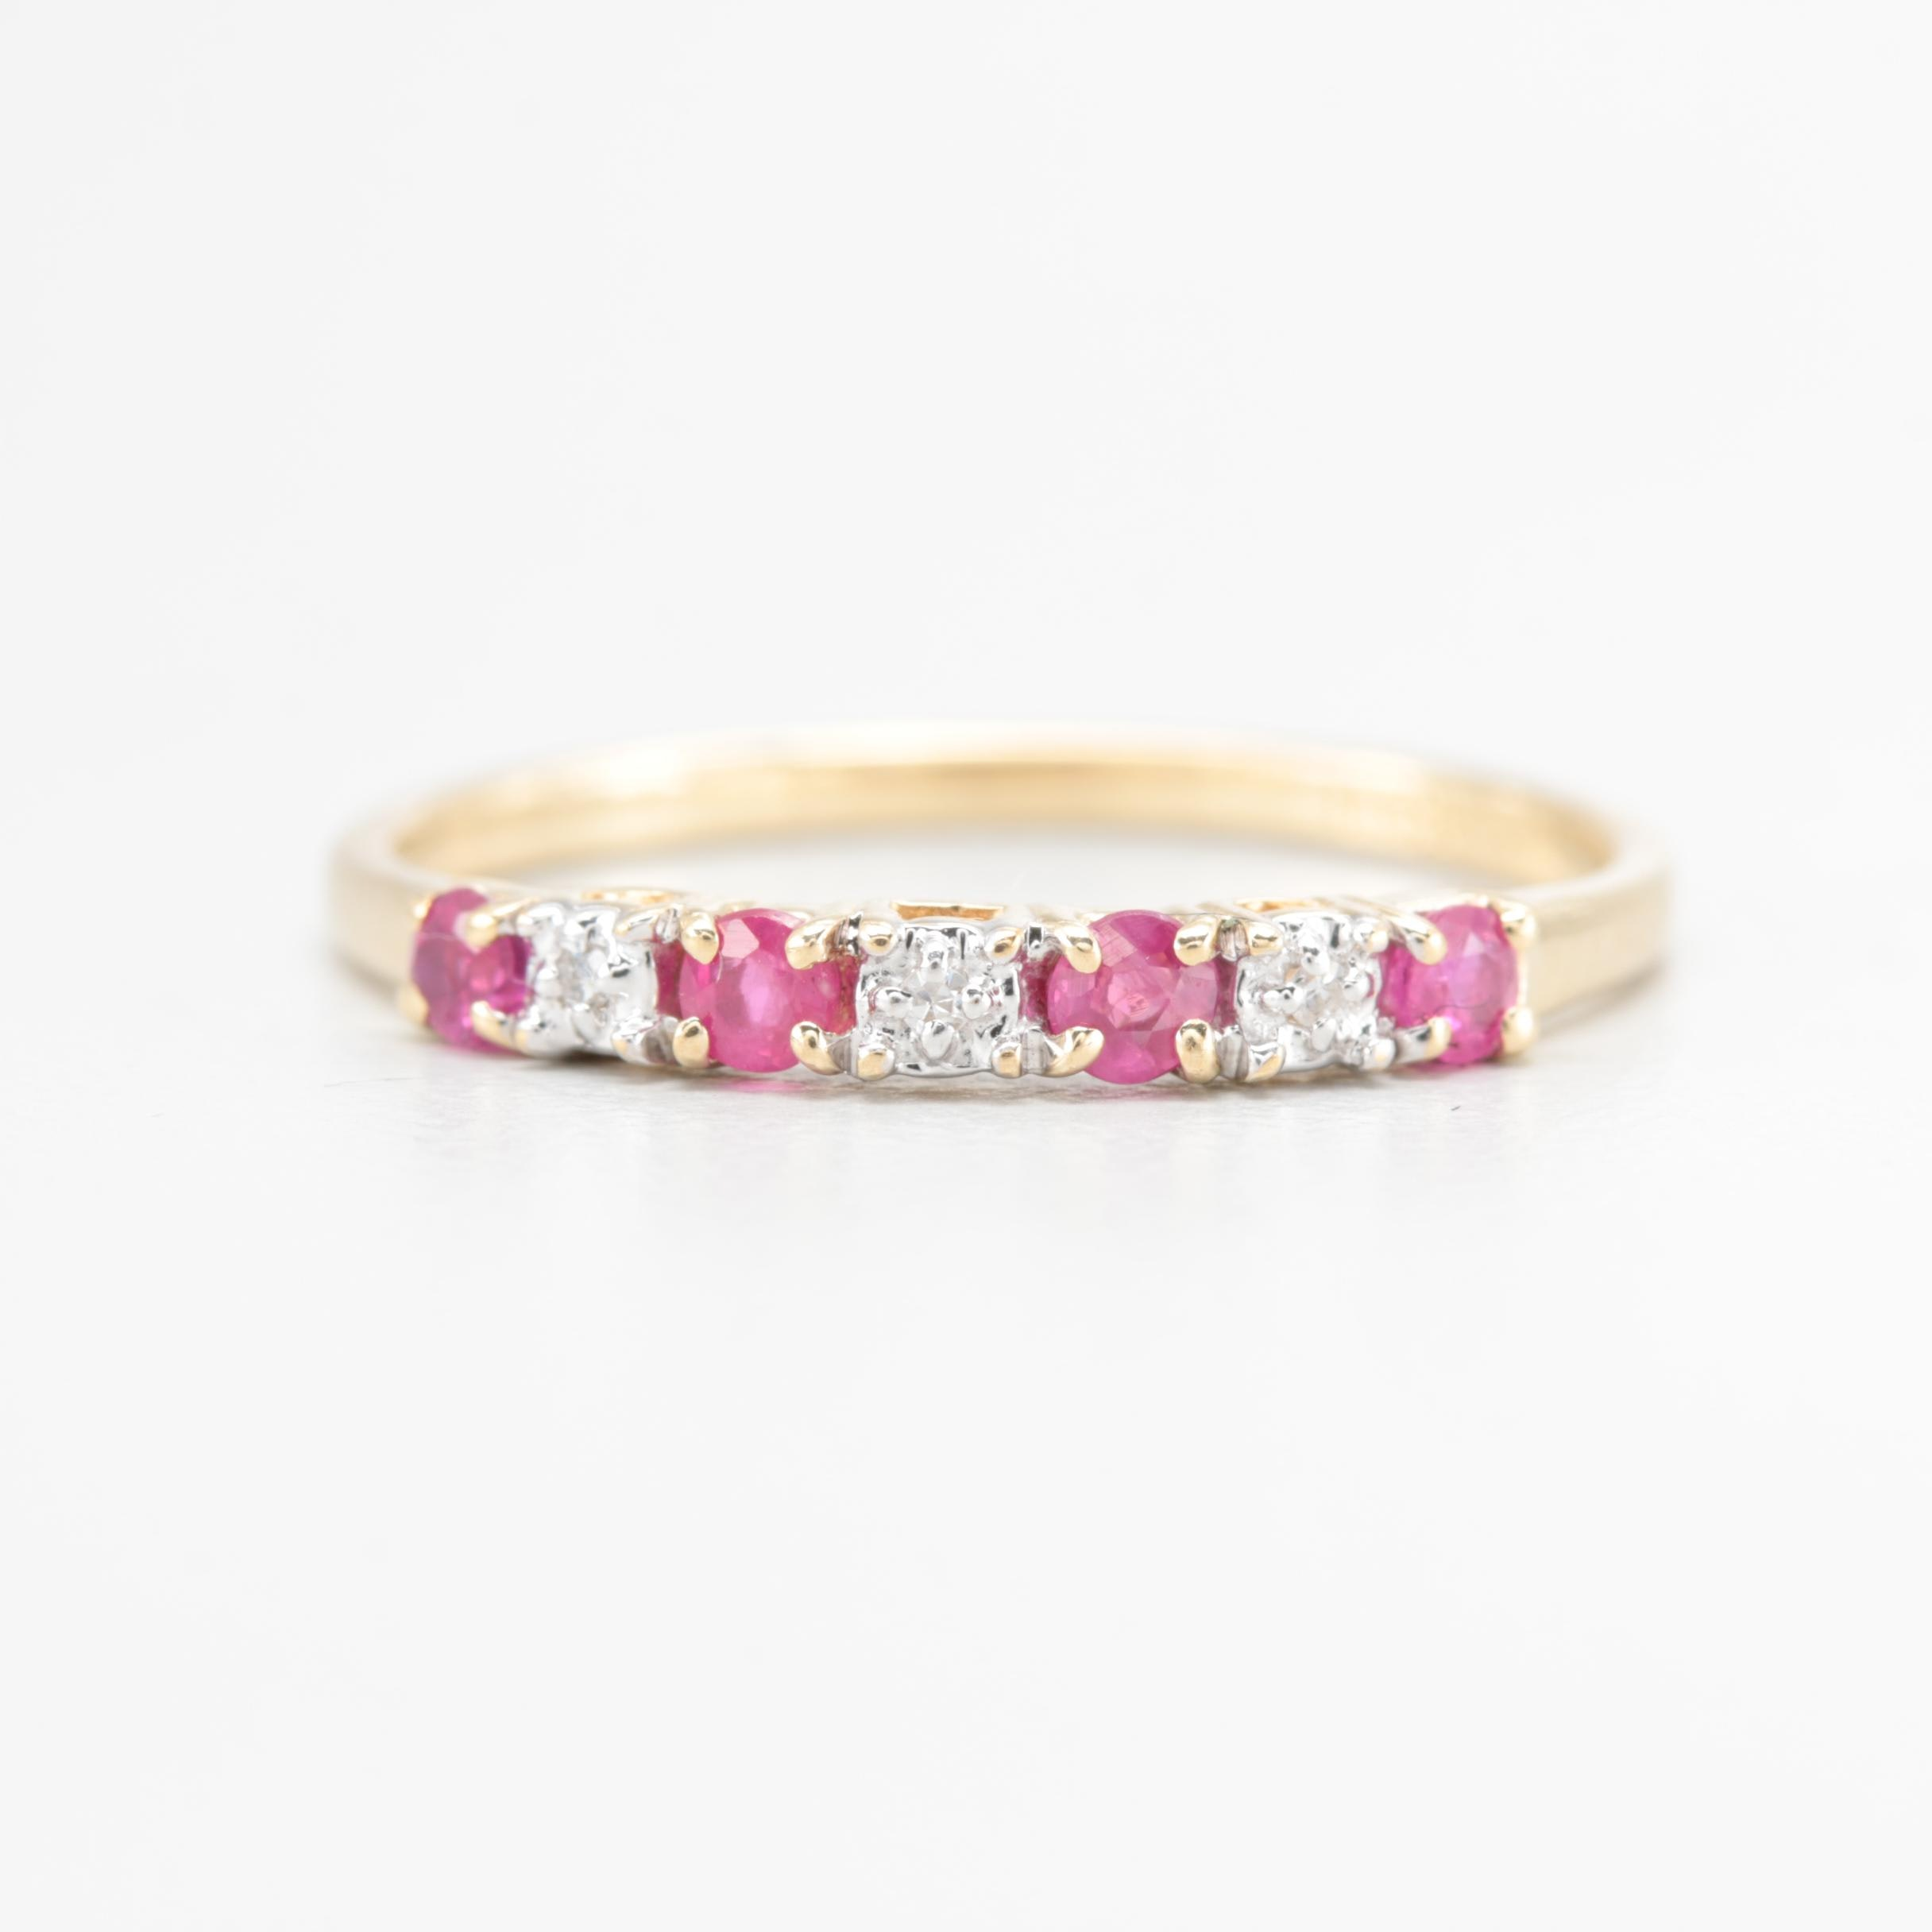 Plainville Stock Company 10K Yellow Gold Ruby and Diamond Ring